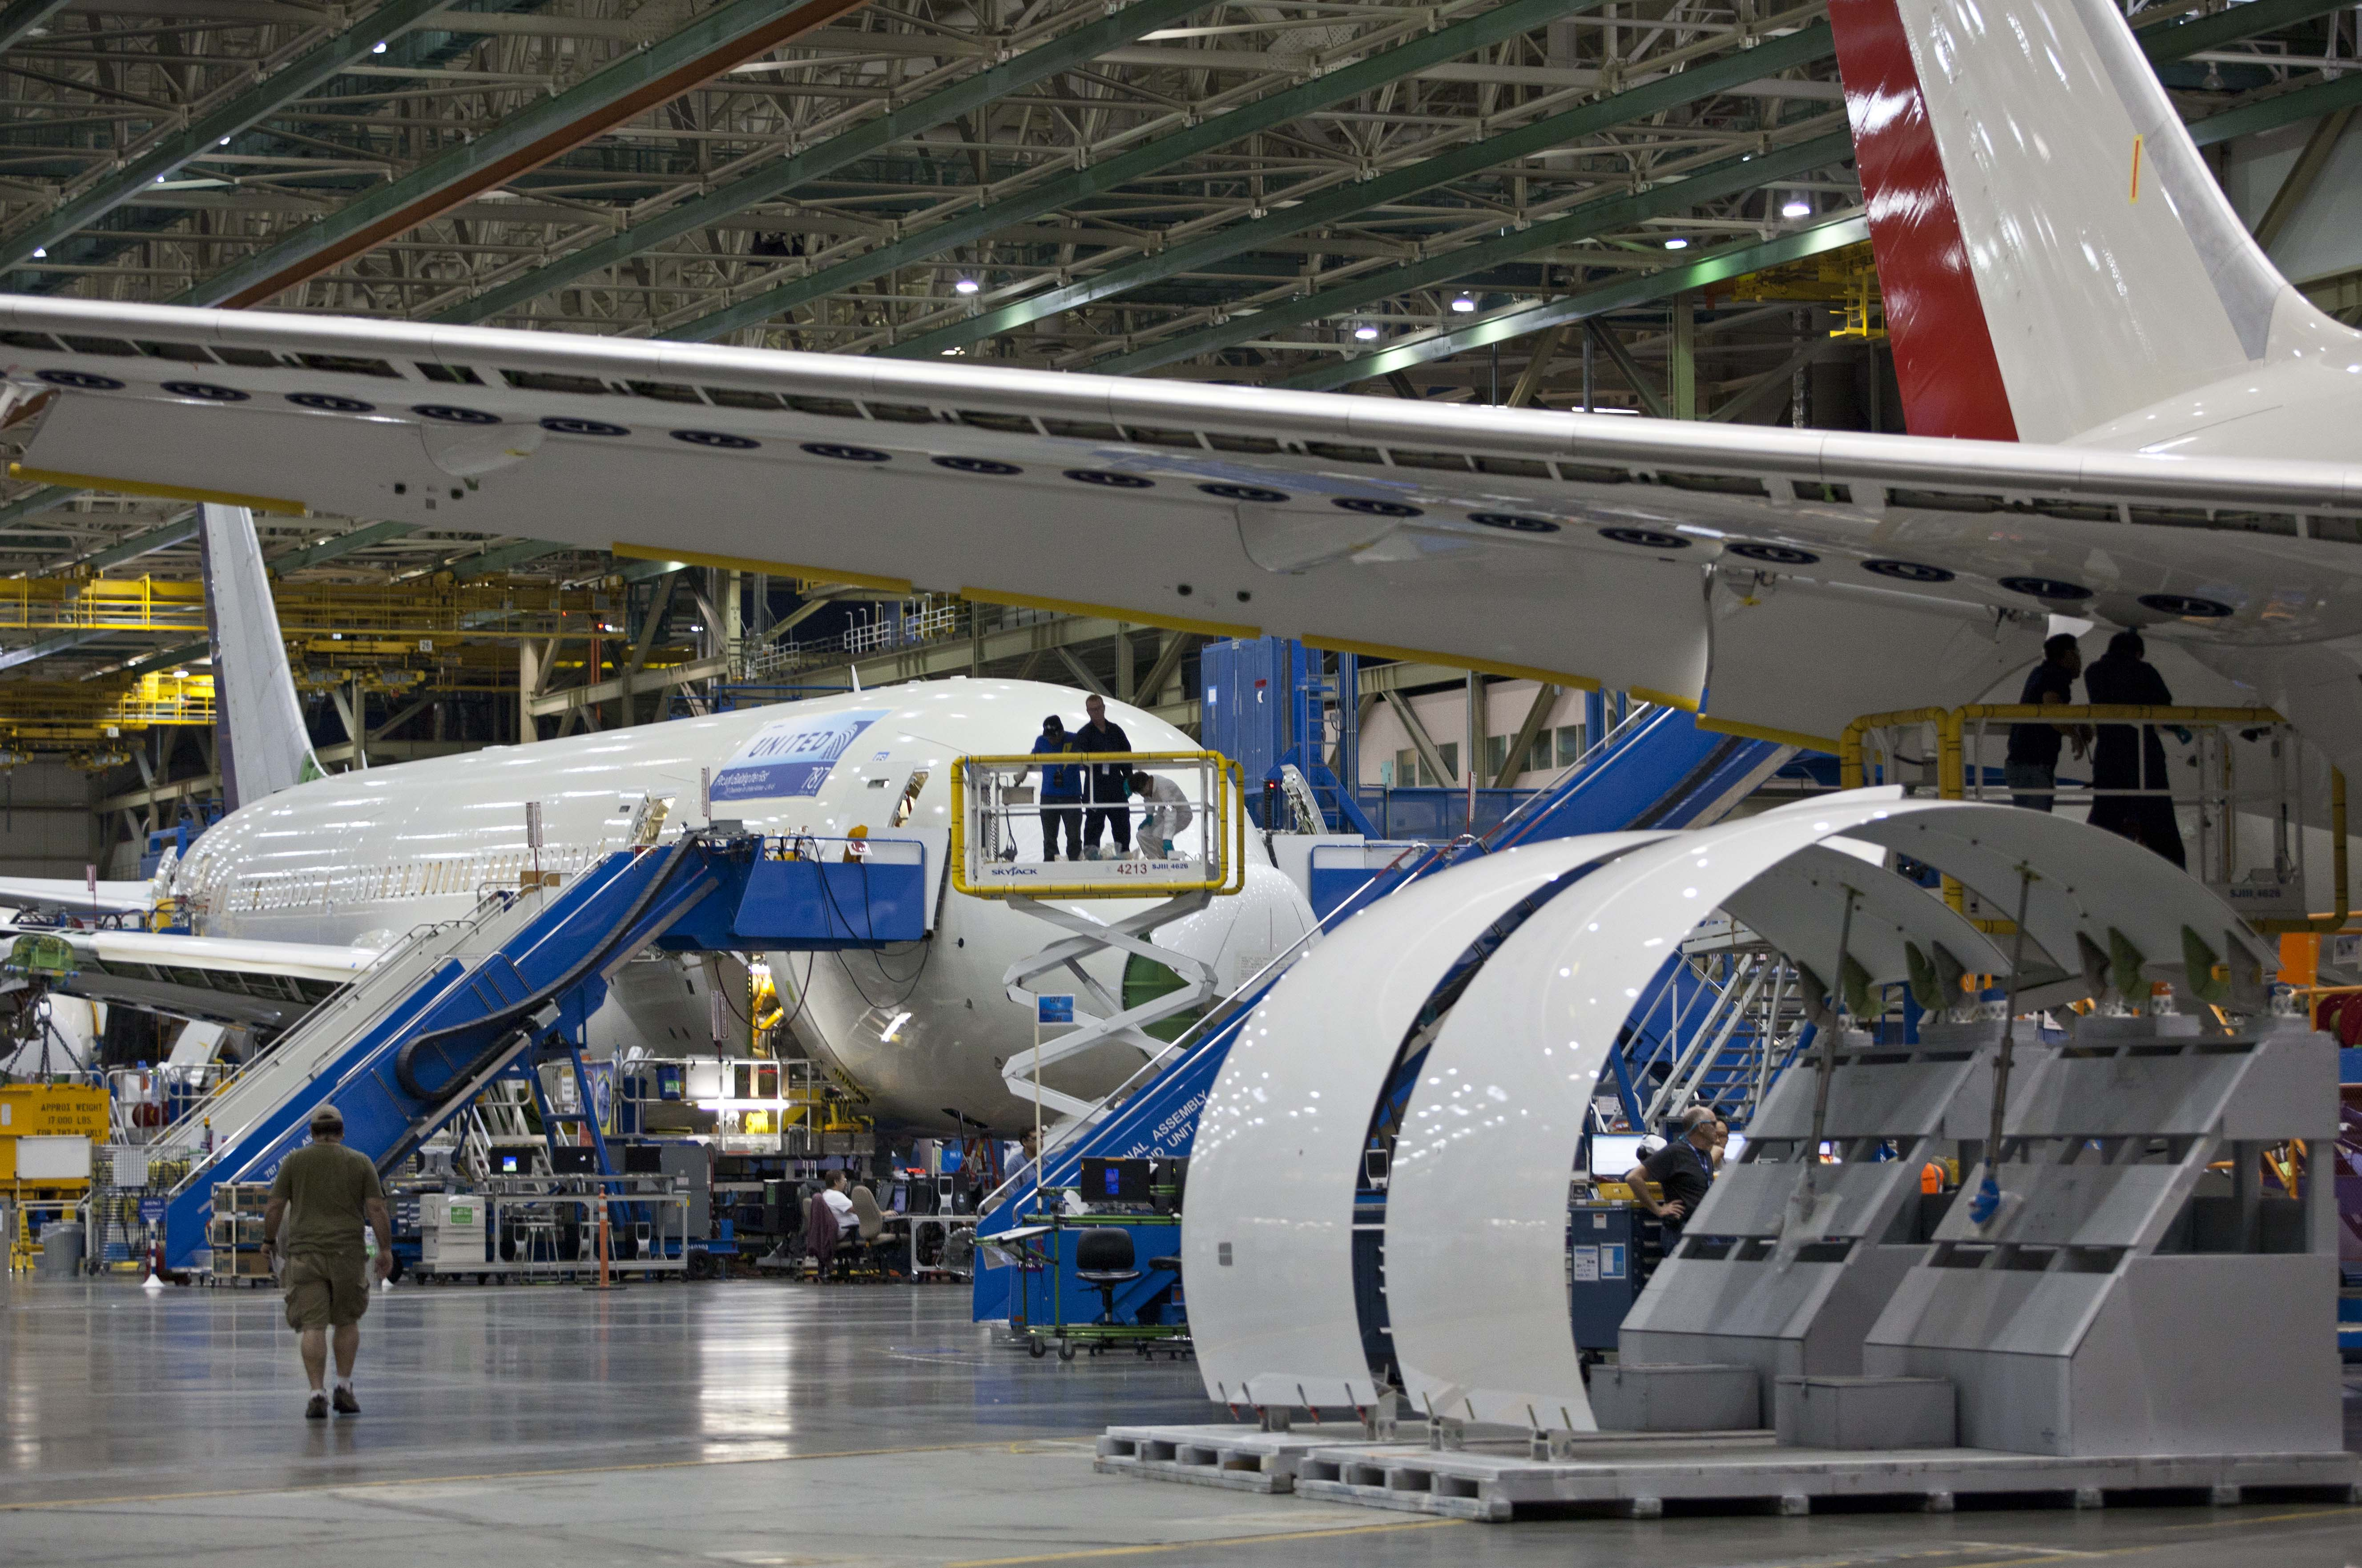 All Nippon Airways Of Japan Takes Delivery Of First Boeing 787 At Everett Wash Factory The Blade